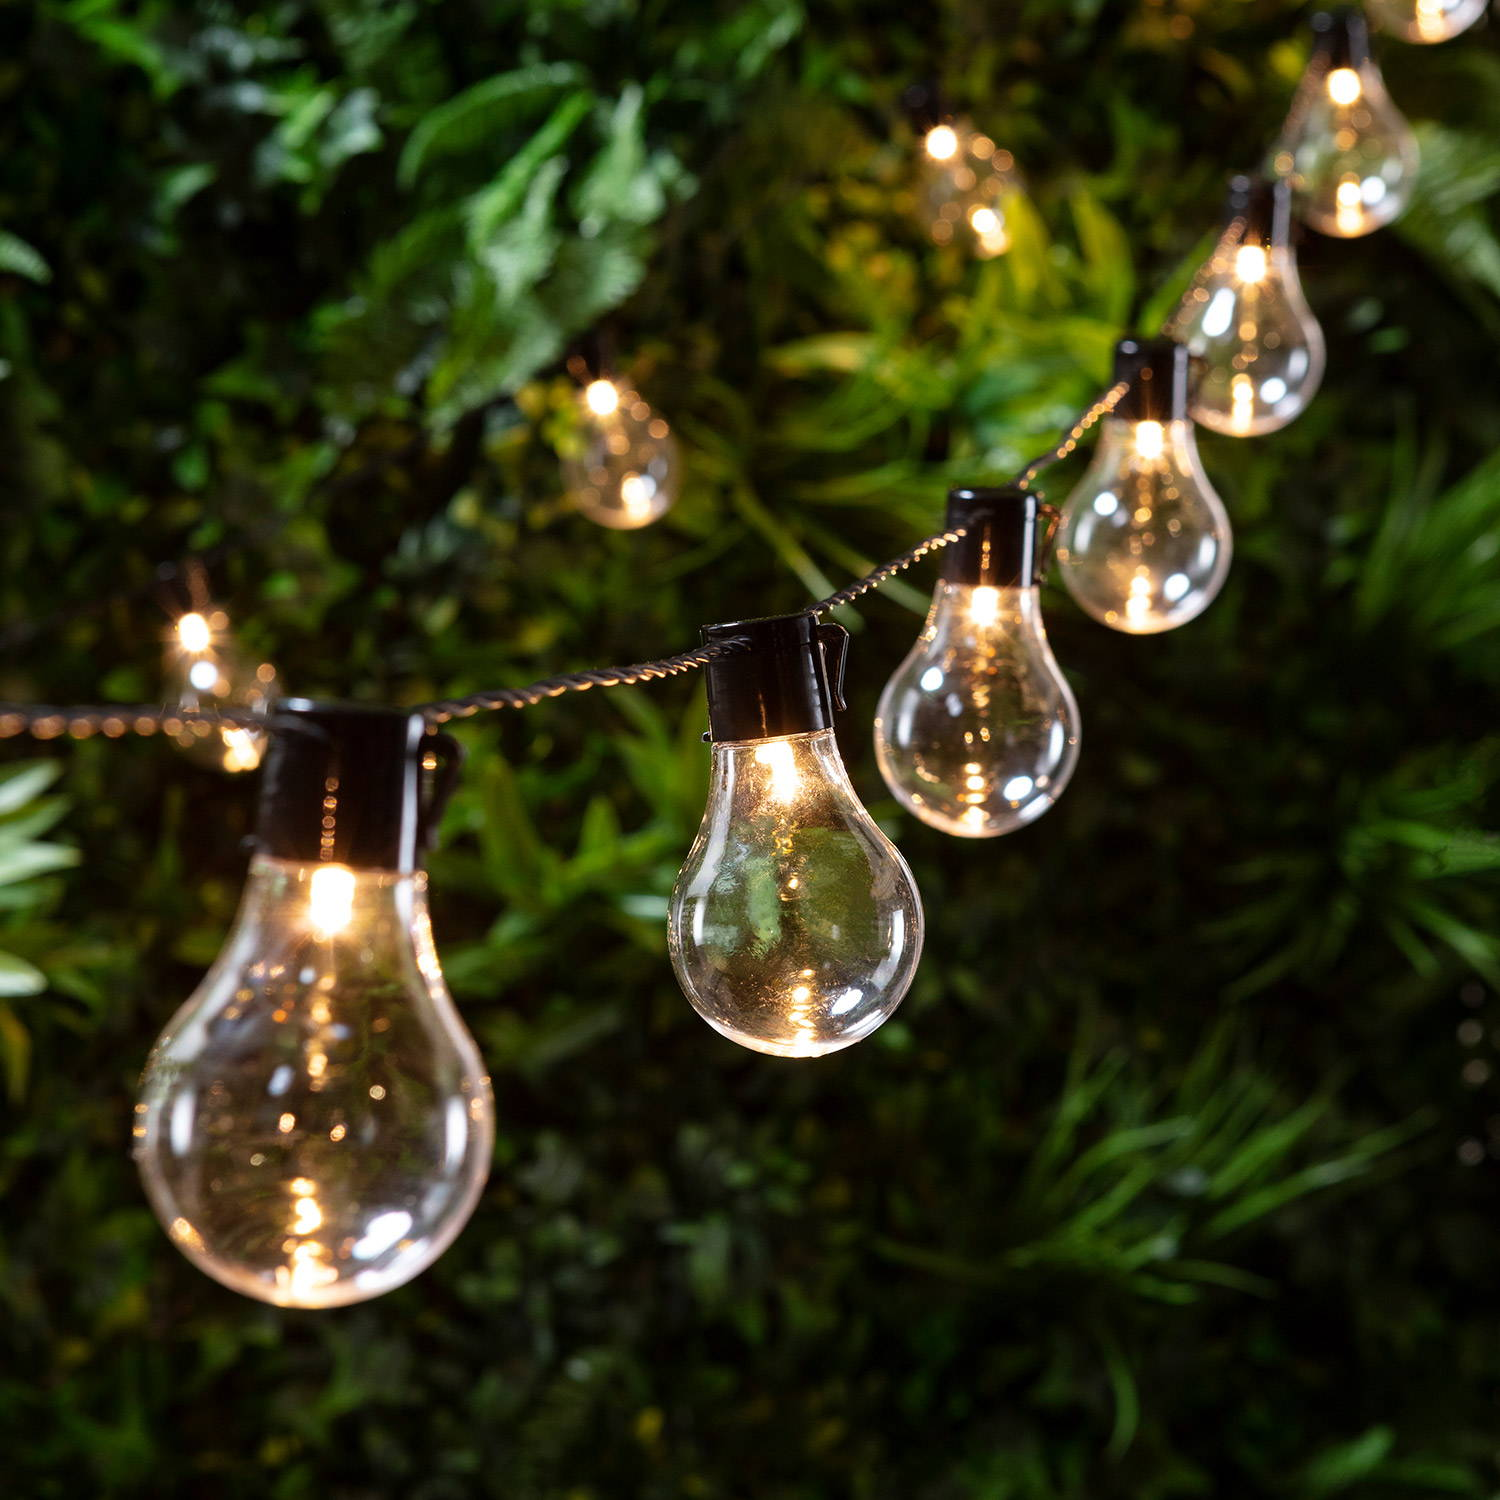 A string of warm white festoon lights in greenery